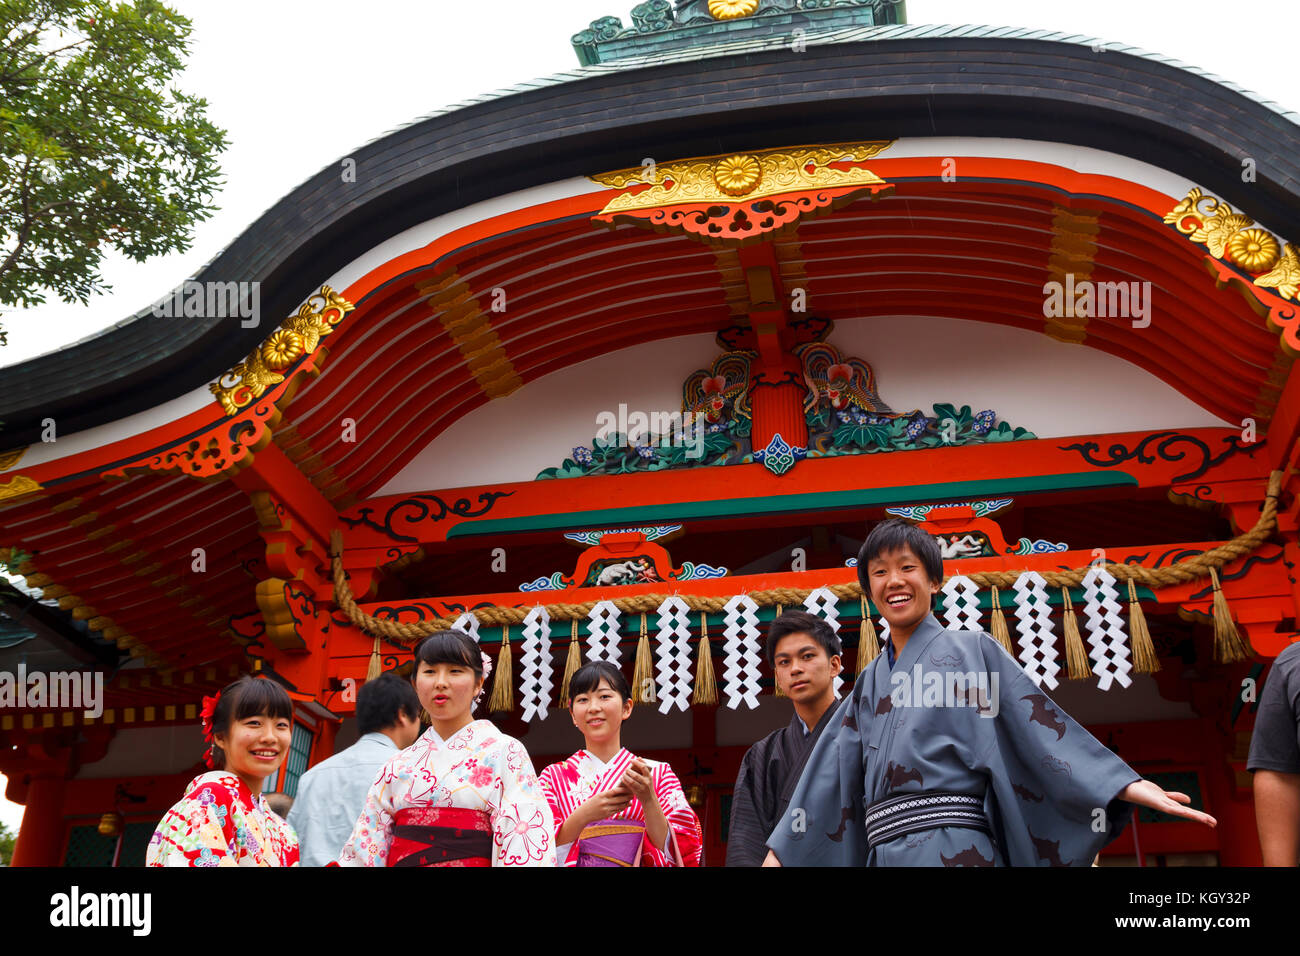 Young Japanese boys dressed in traditional kimonos the main entrance of Fushimi Inari, in Kyoto - Stock Image